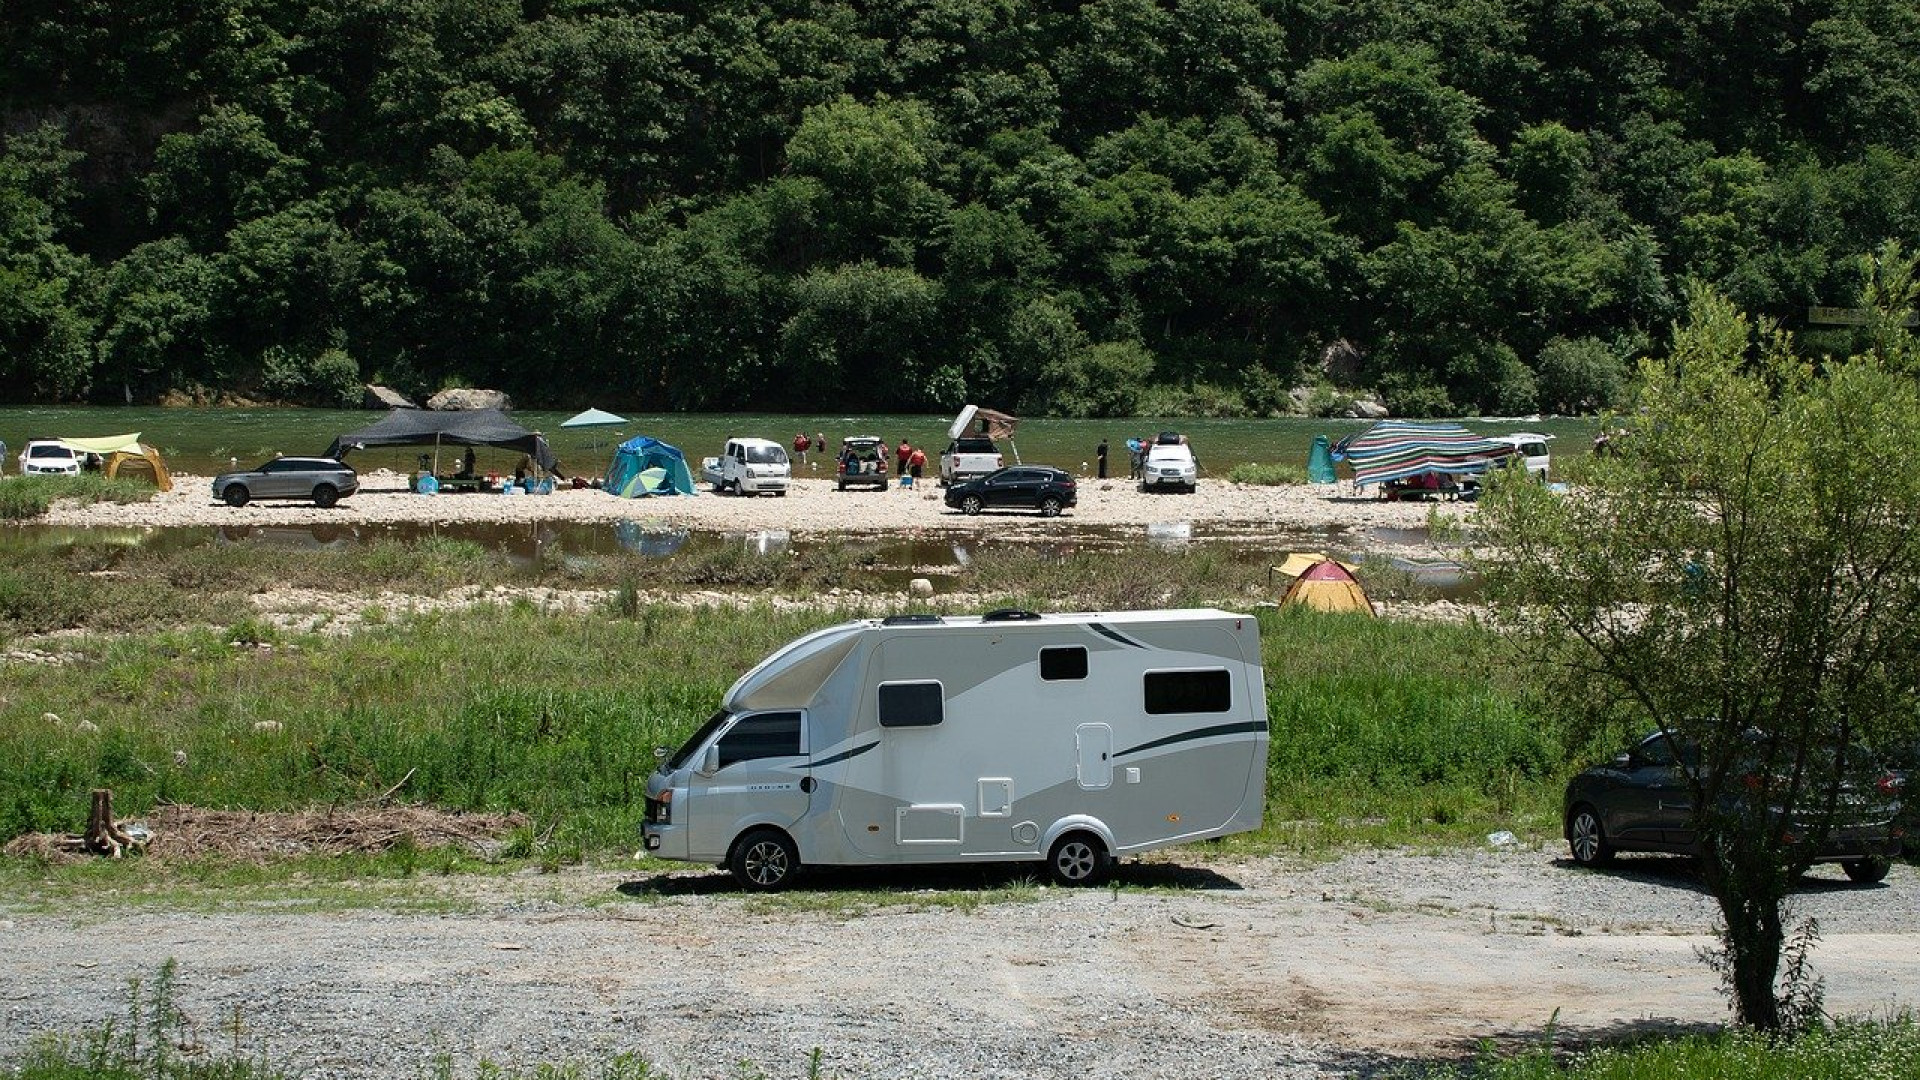 Camping-car d'occasion, comment choisir ?